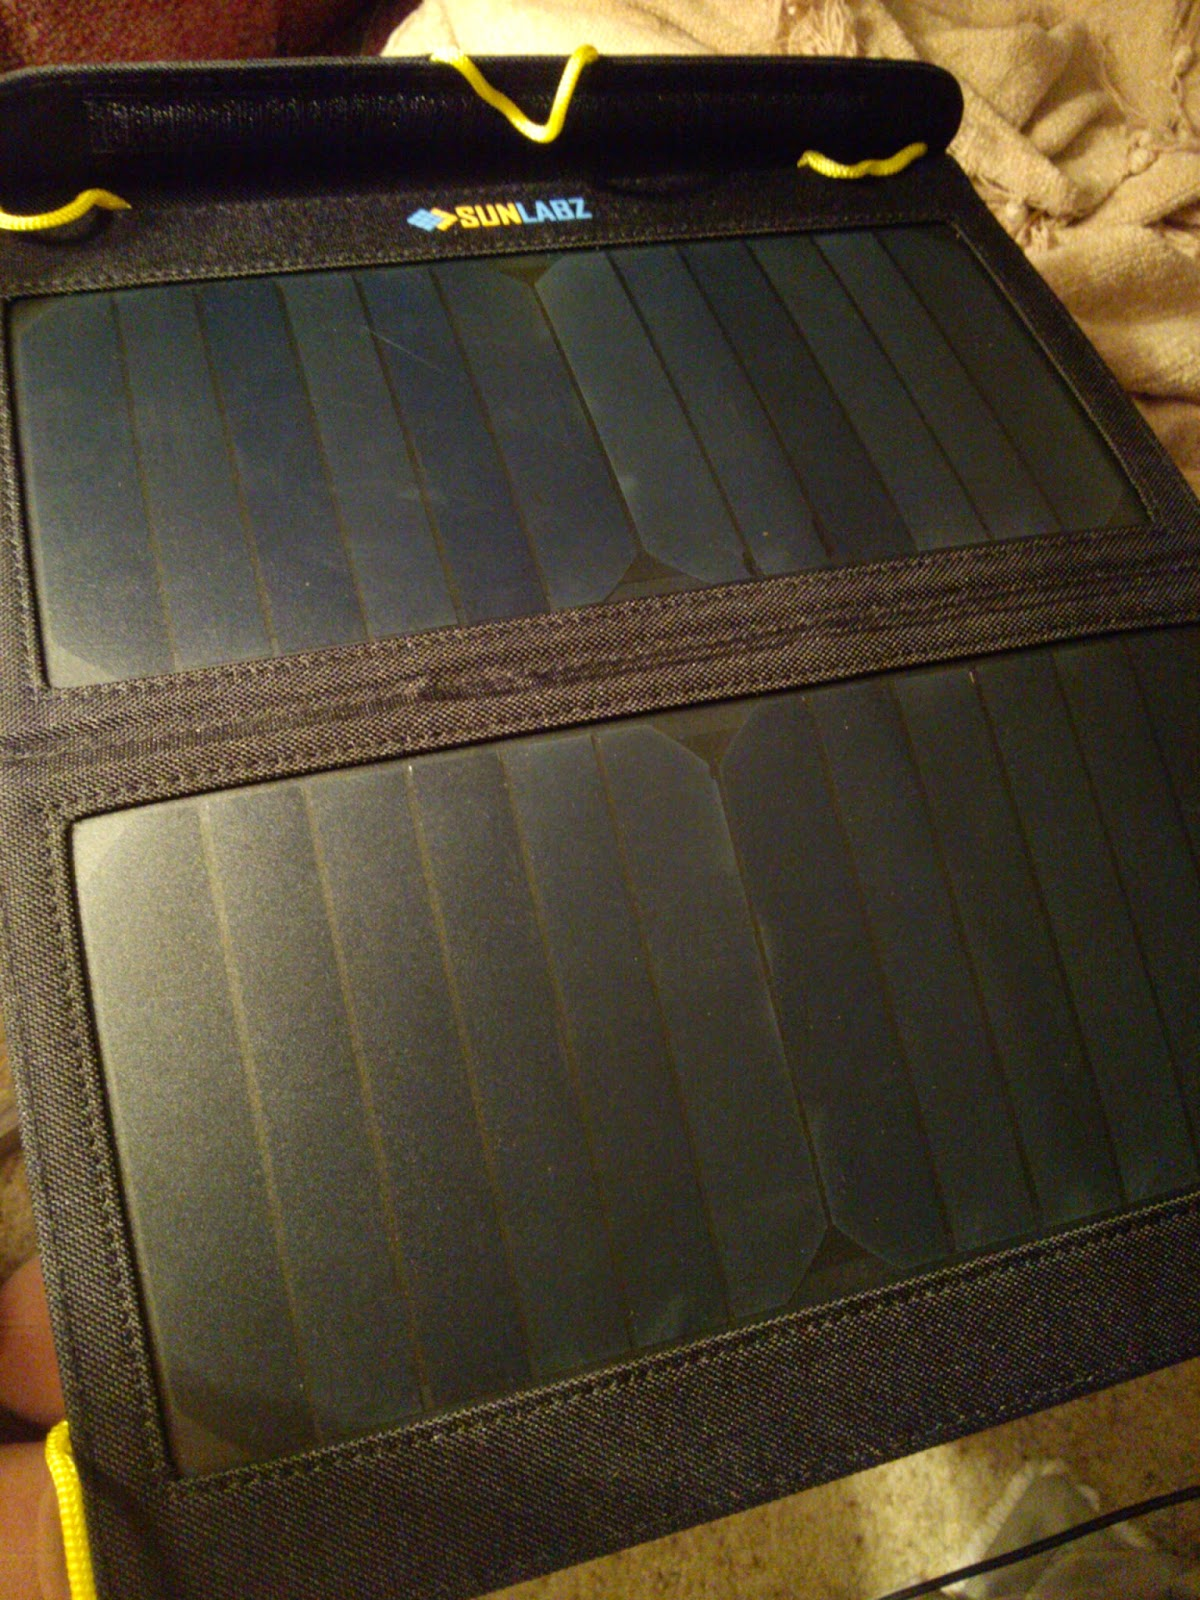 SunLabz Portable Solar Charger Review